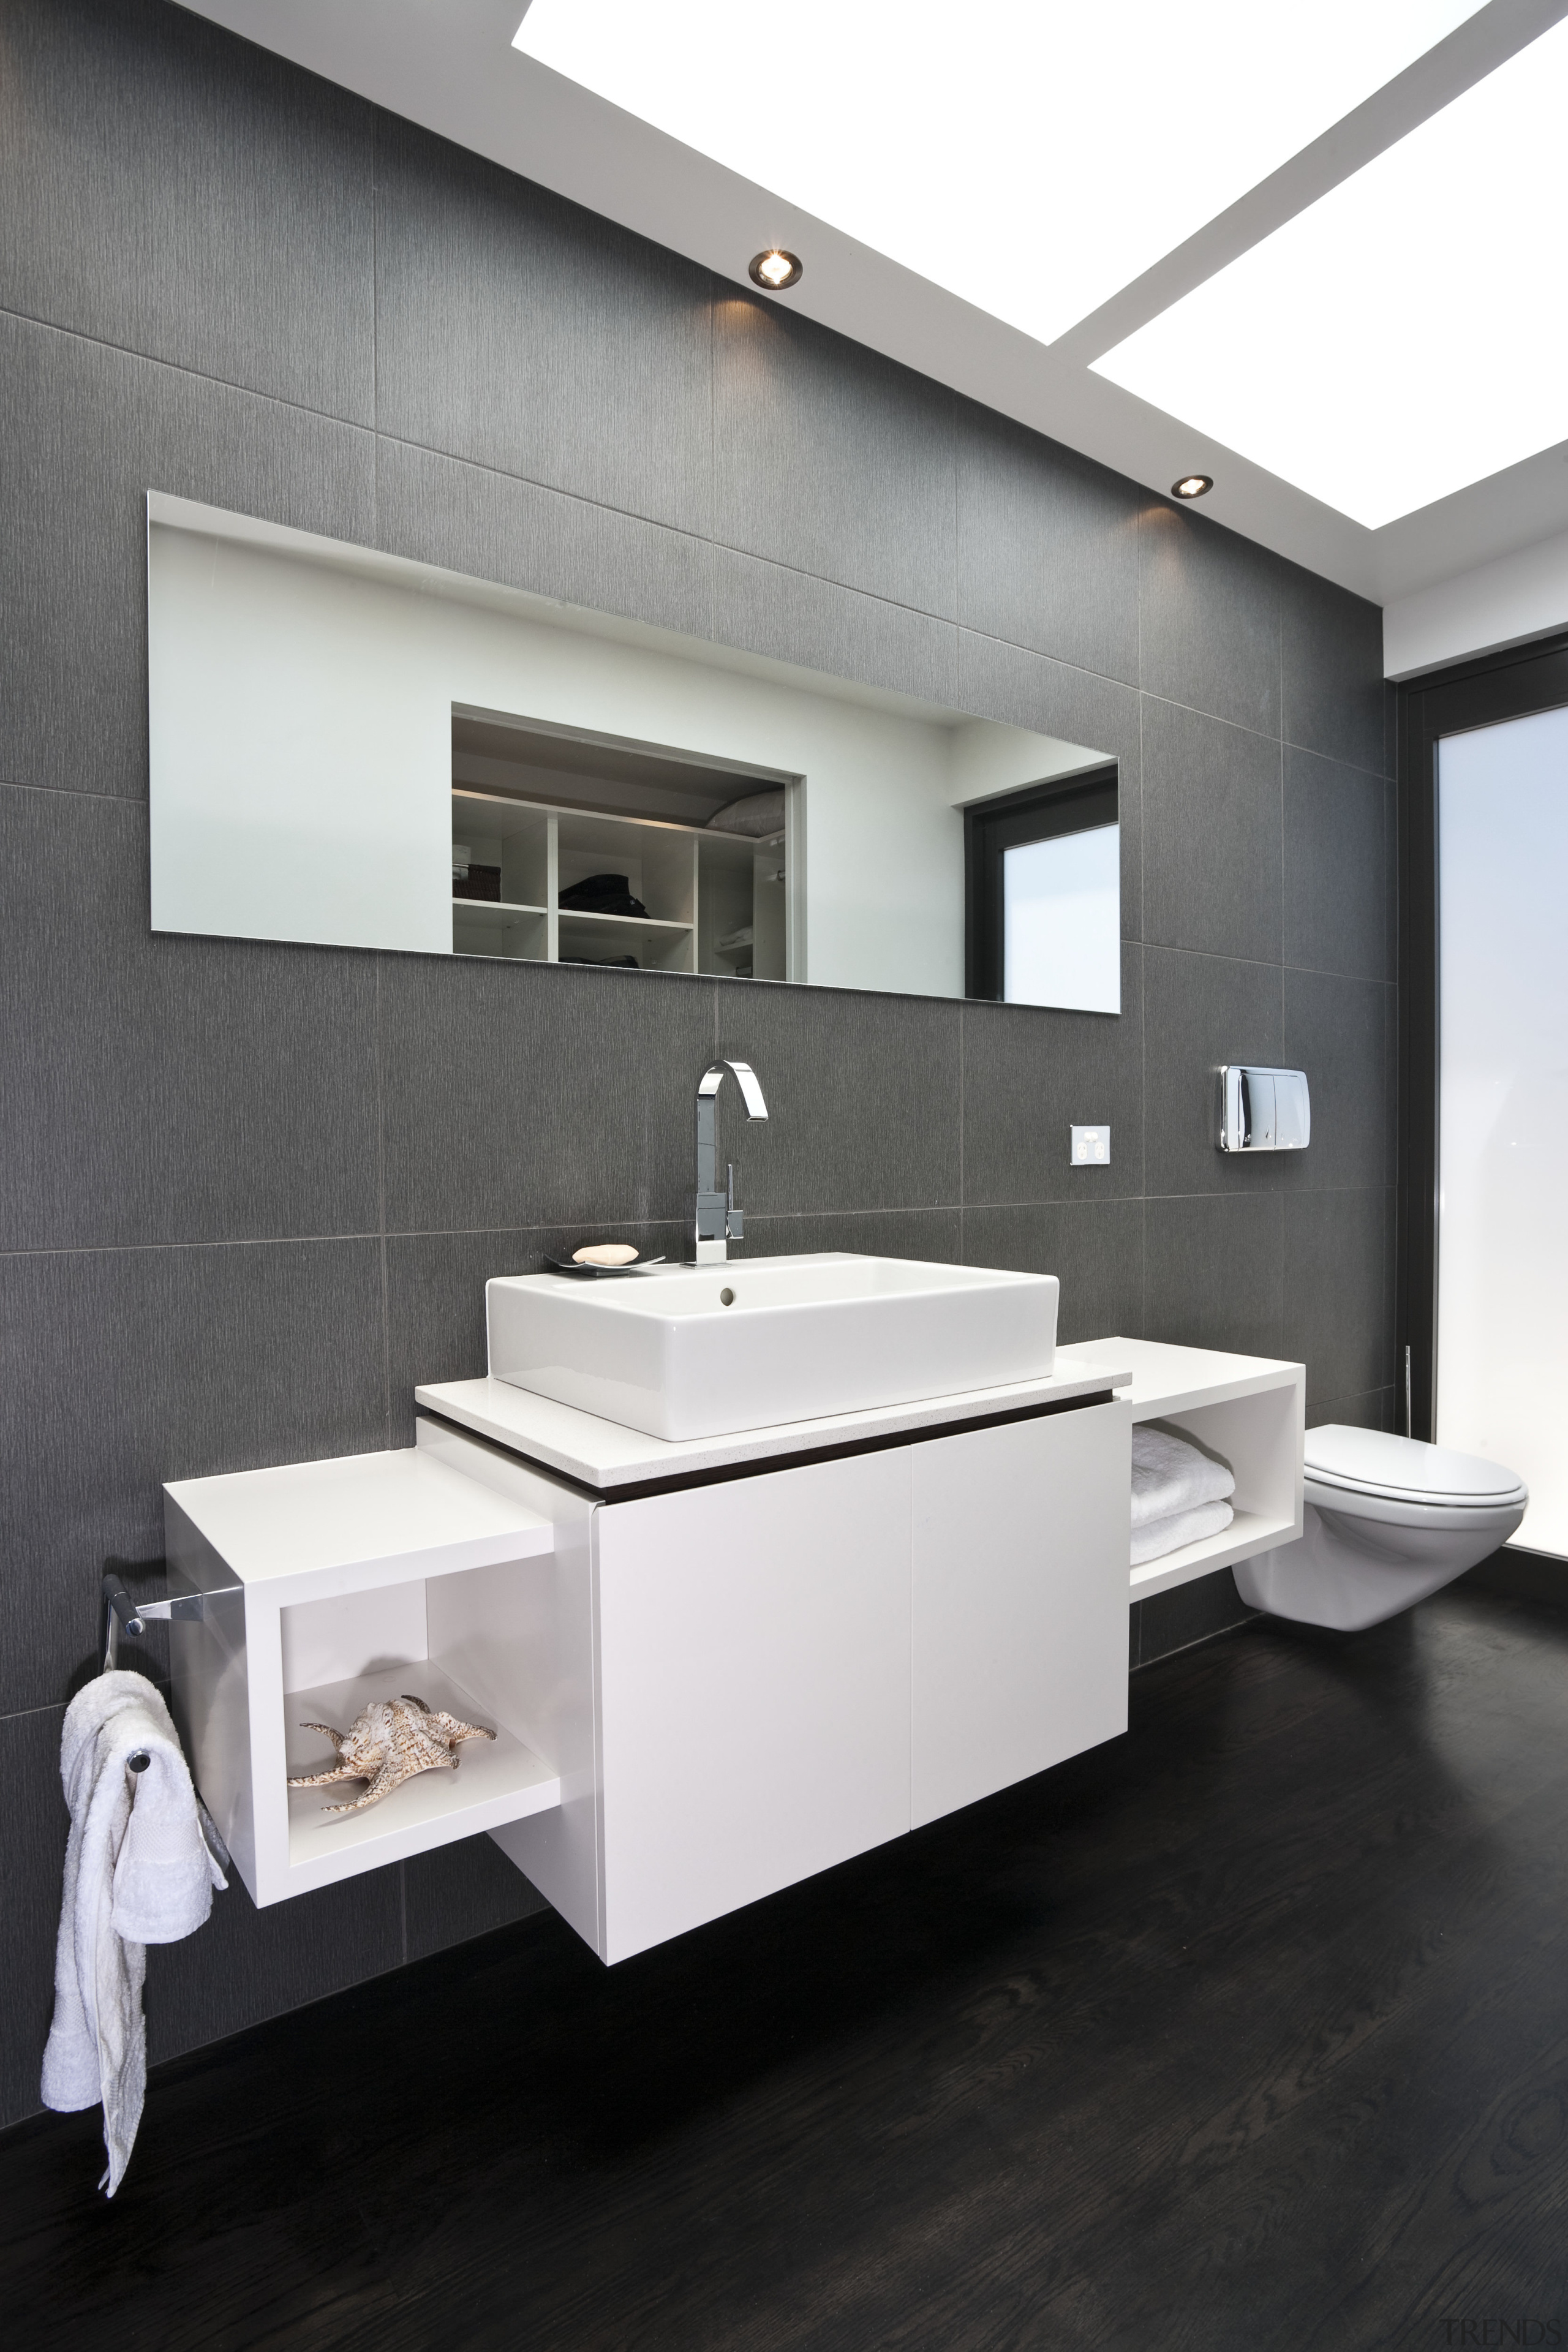 View of the bathroom with black wall tiles bathroom, floor, flooring, interior design, product design, sink, tap, white, black, gray